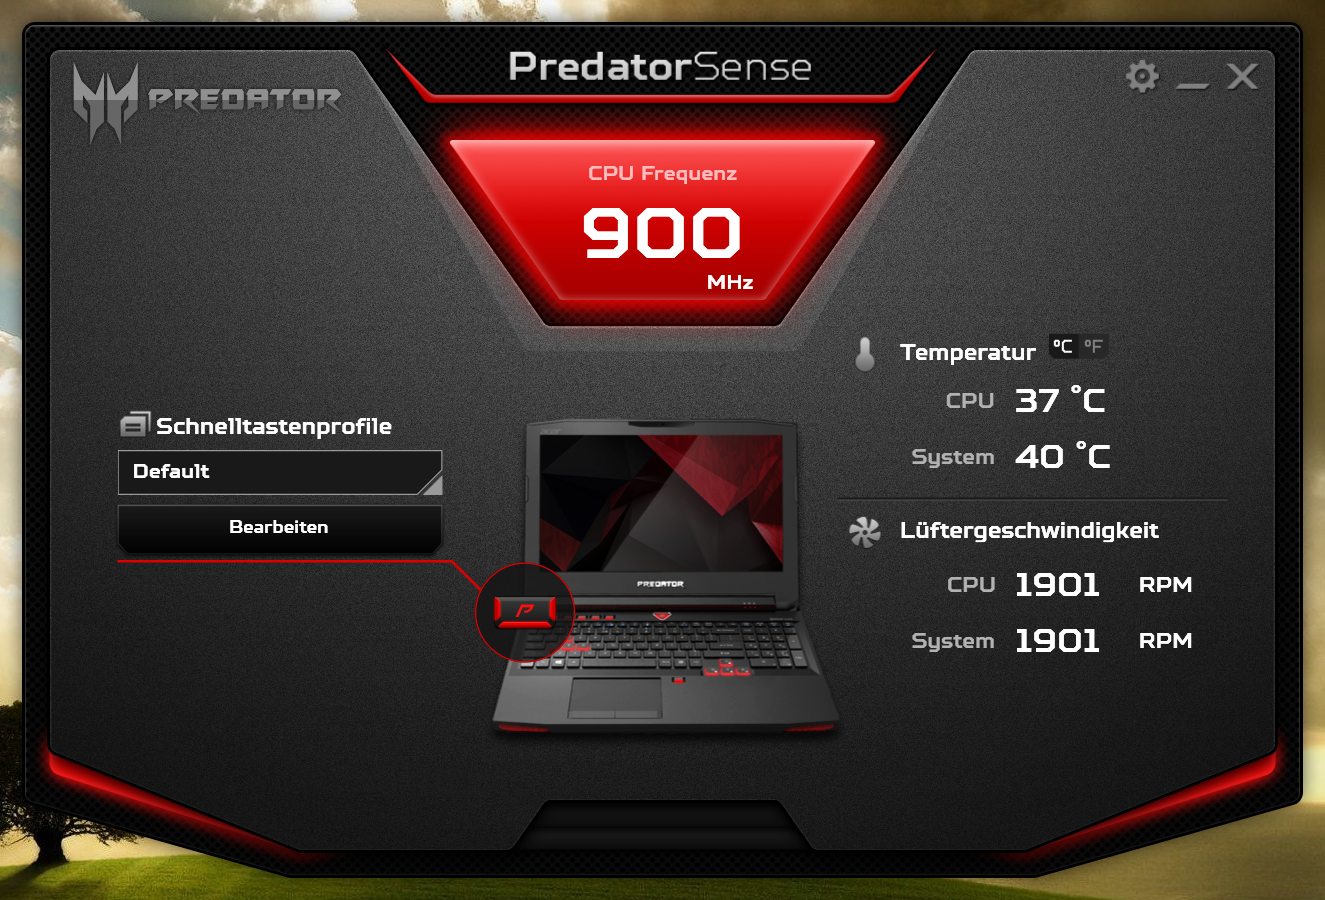 predator_6 Mit dem Raubtier von Acer zum Sieg - Gaming-Notebook Predator 15 im Test Acer Computer Featured Games Hardware Microsoft Reviews Testberichte Windows